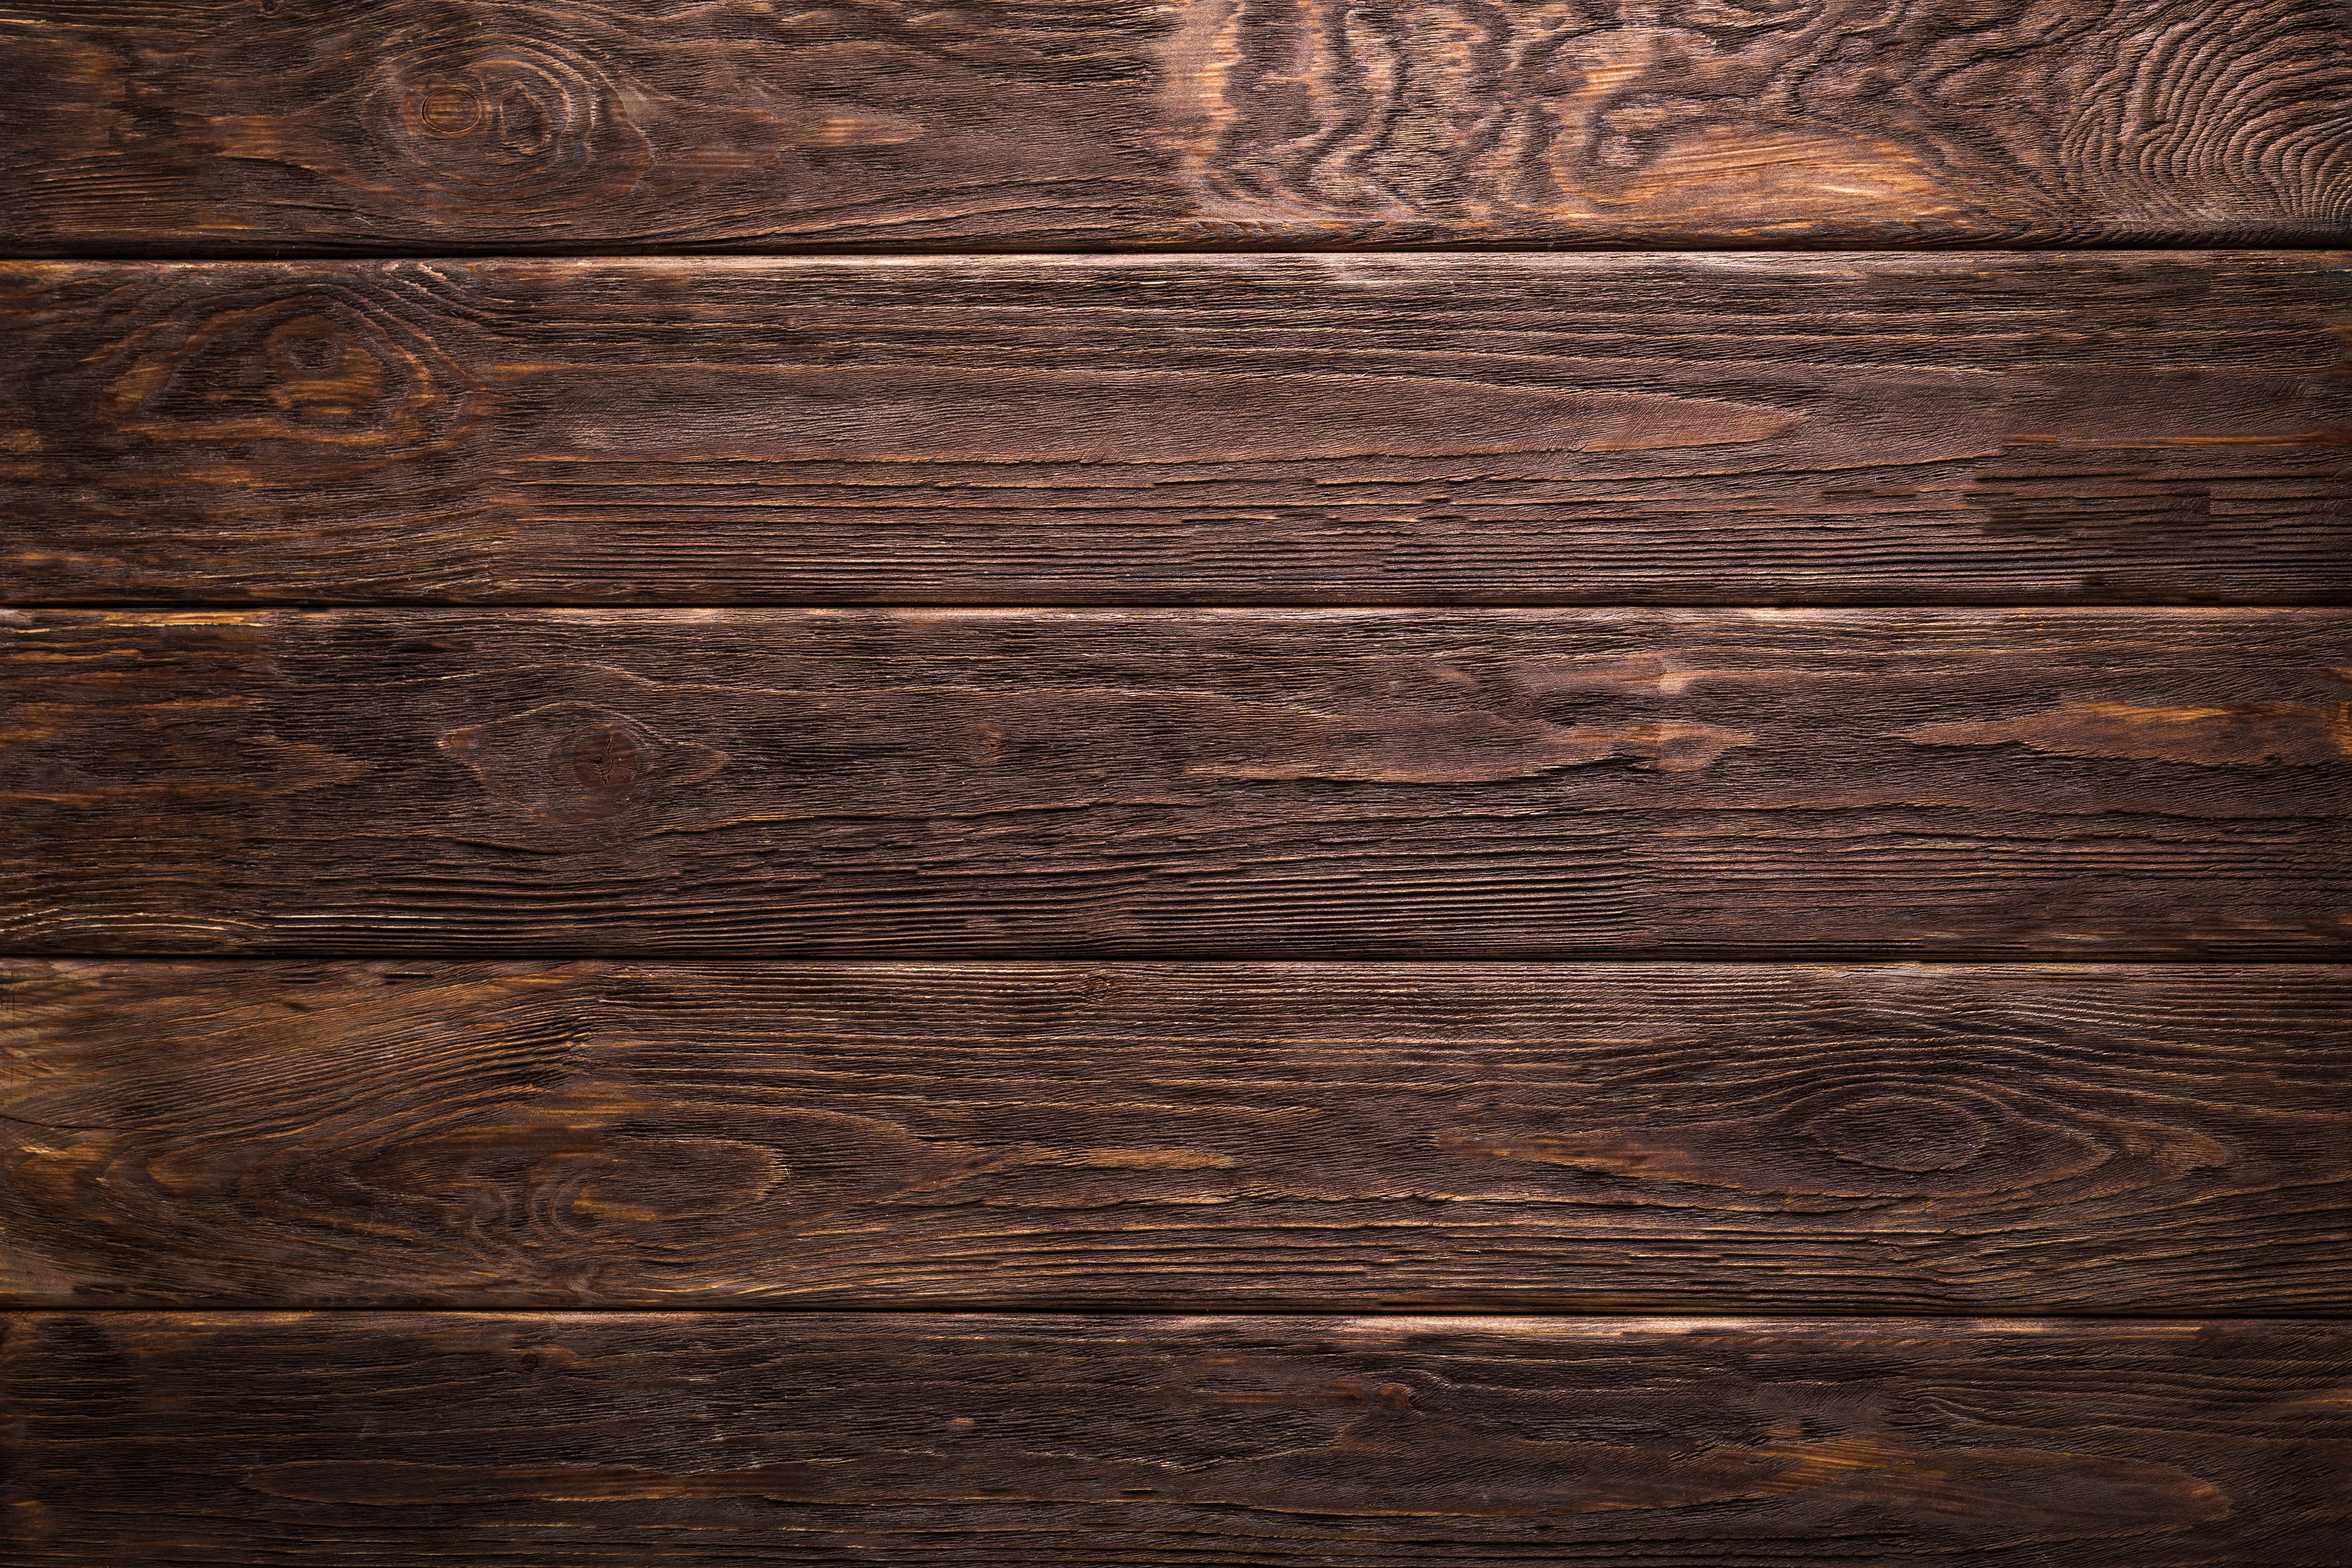 59397 download wallpaper Surface, Wood, Wooden, Texture, Textures, Planks, Board screensavers and pictures for free